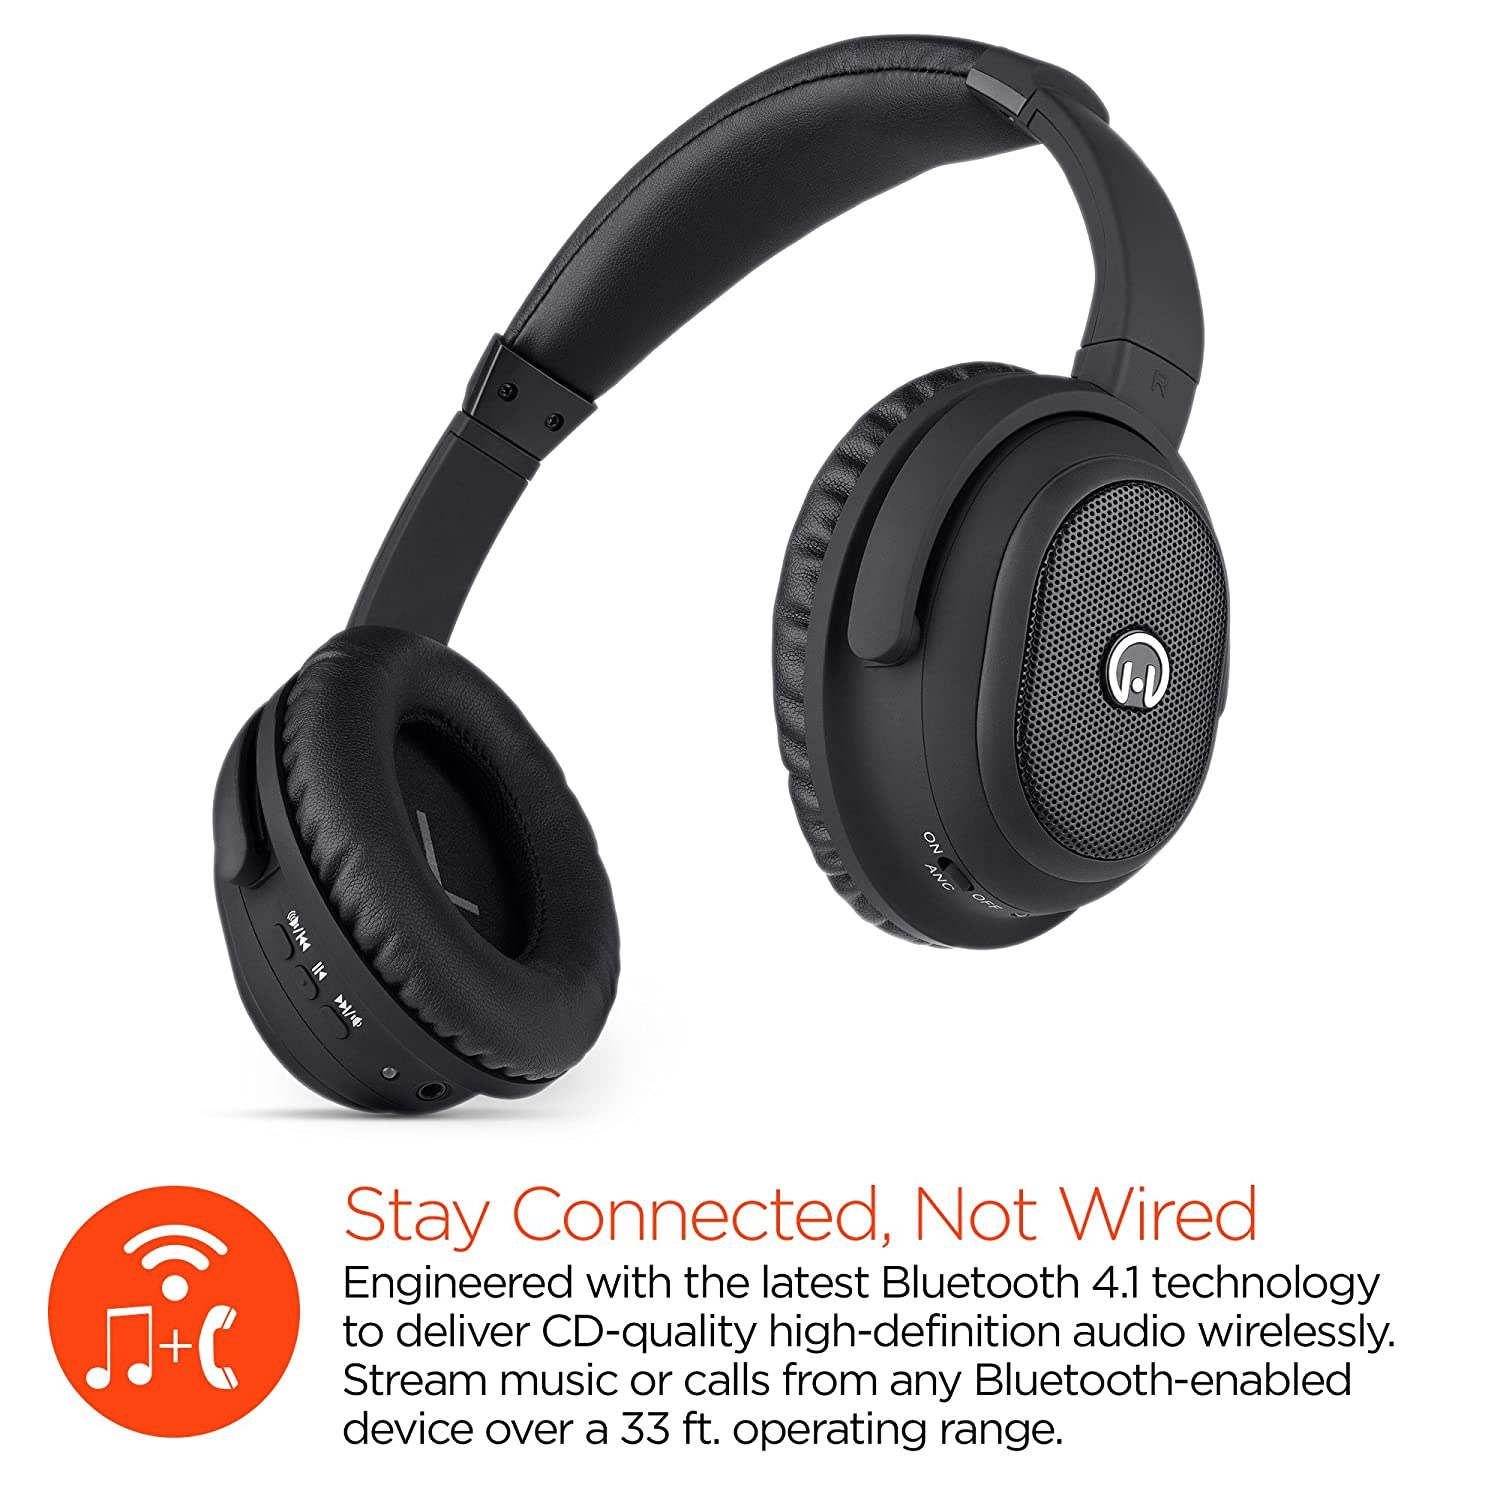 Amazon.com: HyperGear Stealth Noise Cancelling Wireless Bluetooth Stereo Headphones with Microphone,12 hrs of Talk/Music Compatible for iPhone,Smartphones ...